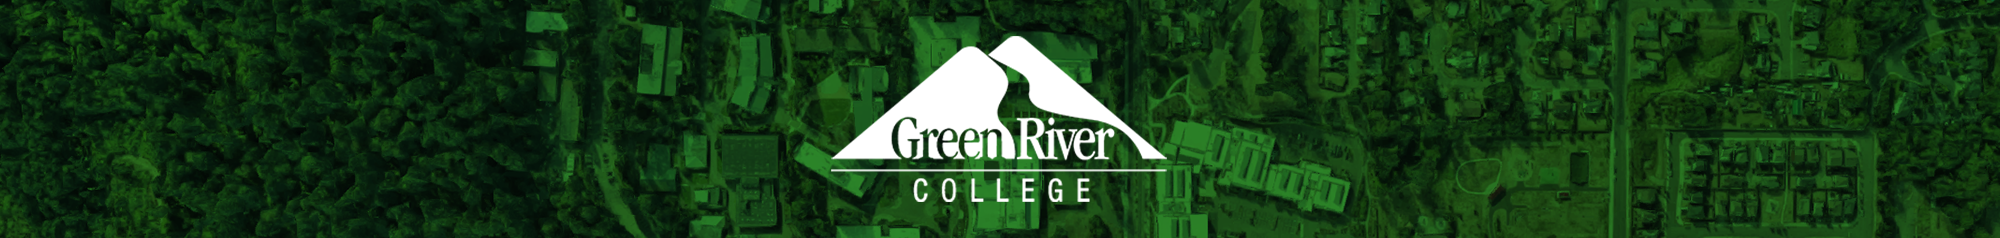 Green River College | Student Life Ticketing